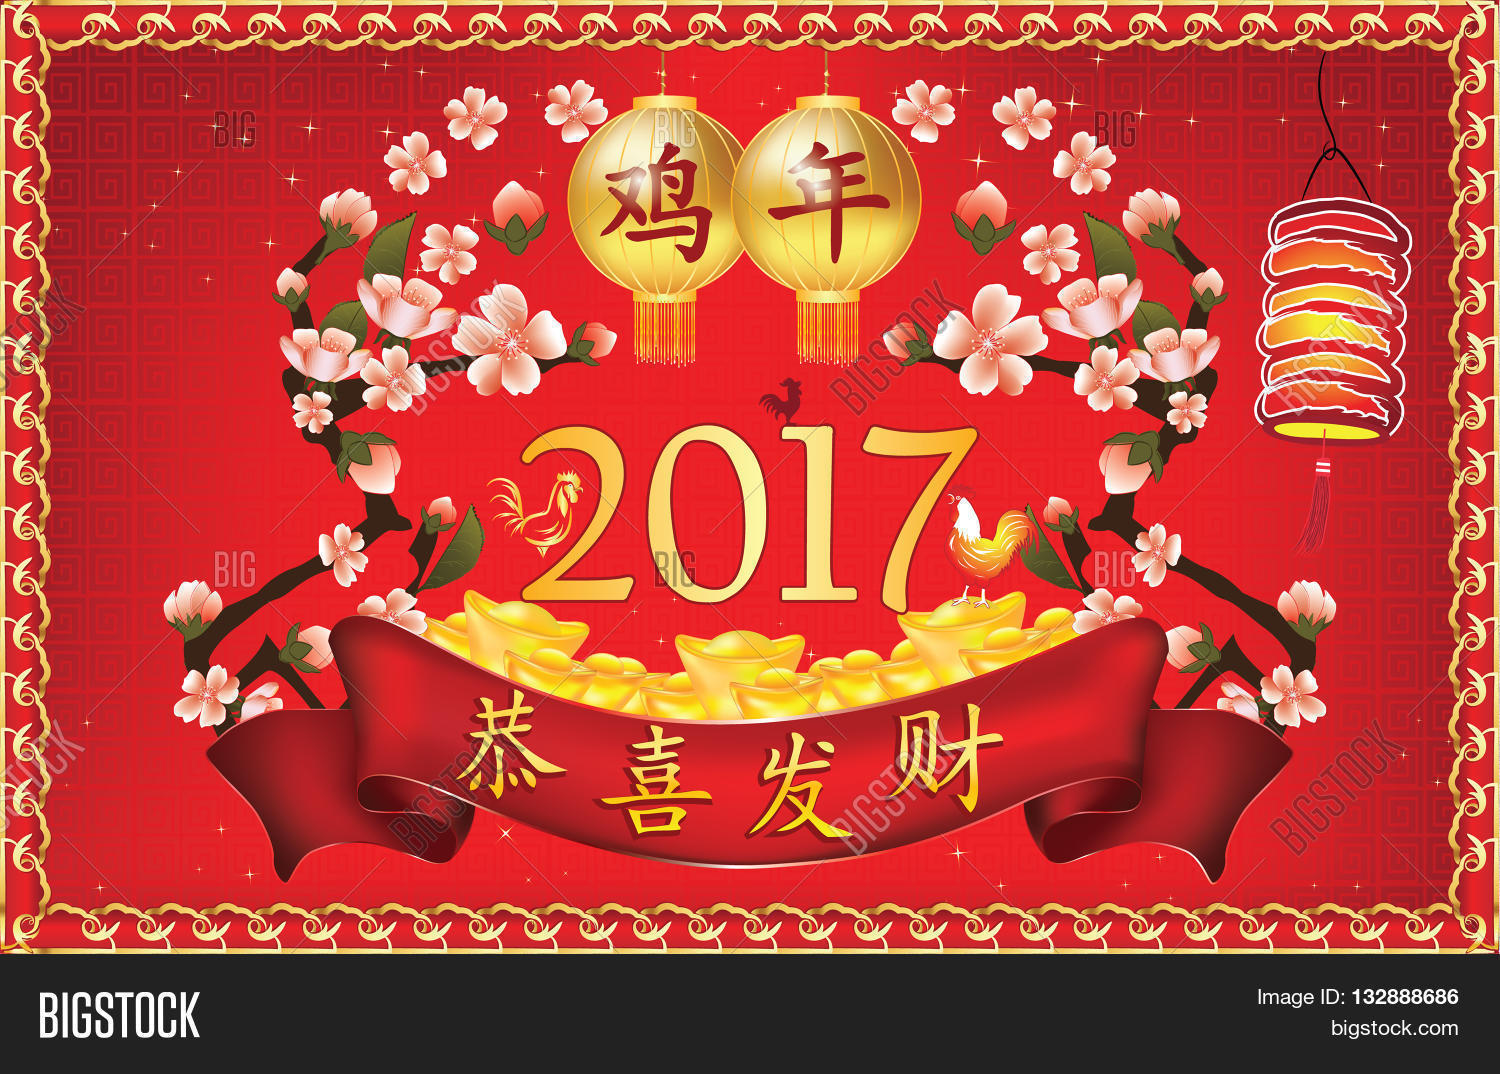 chinese new year business greeting card text translation year of the rooster happy